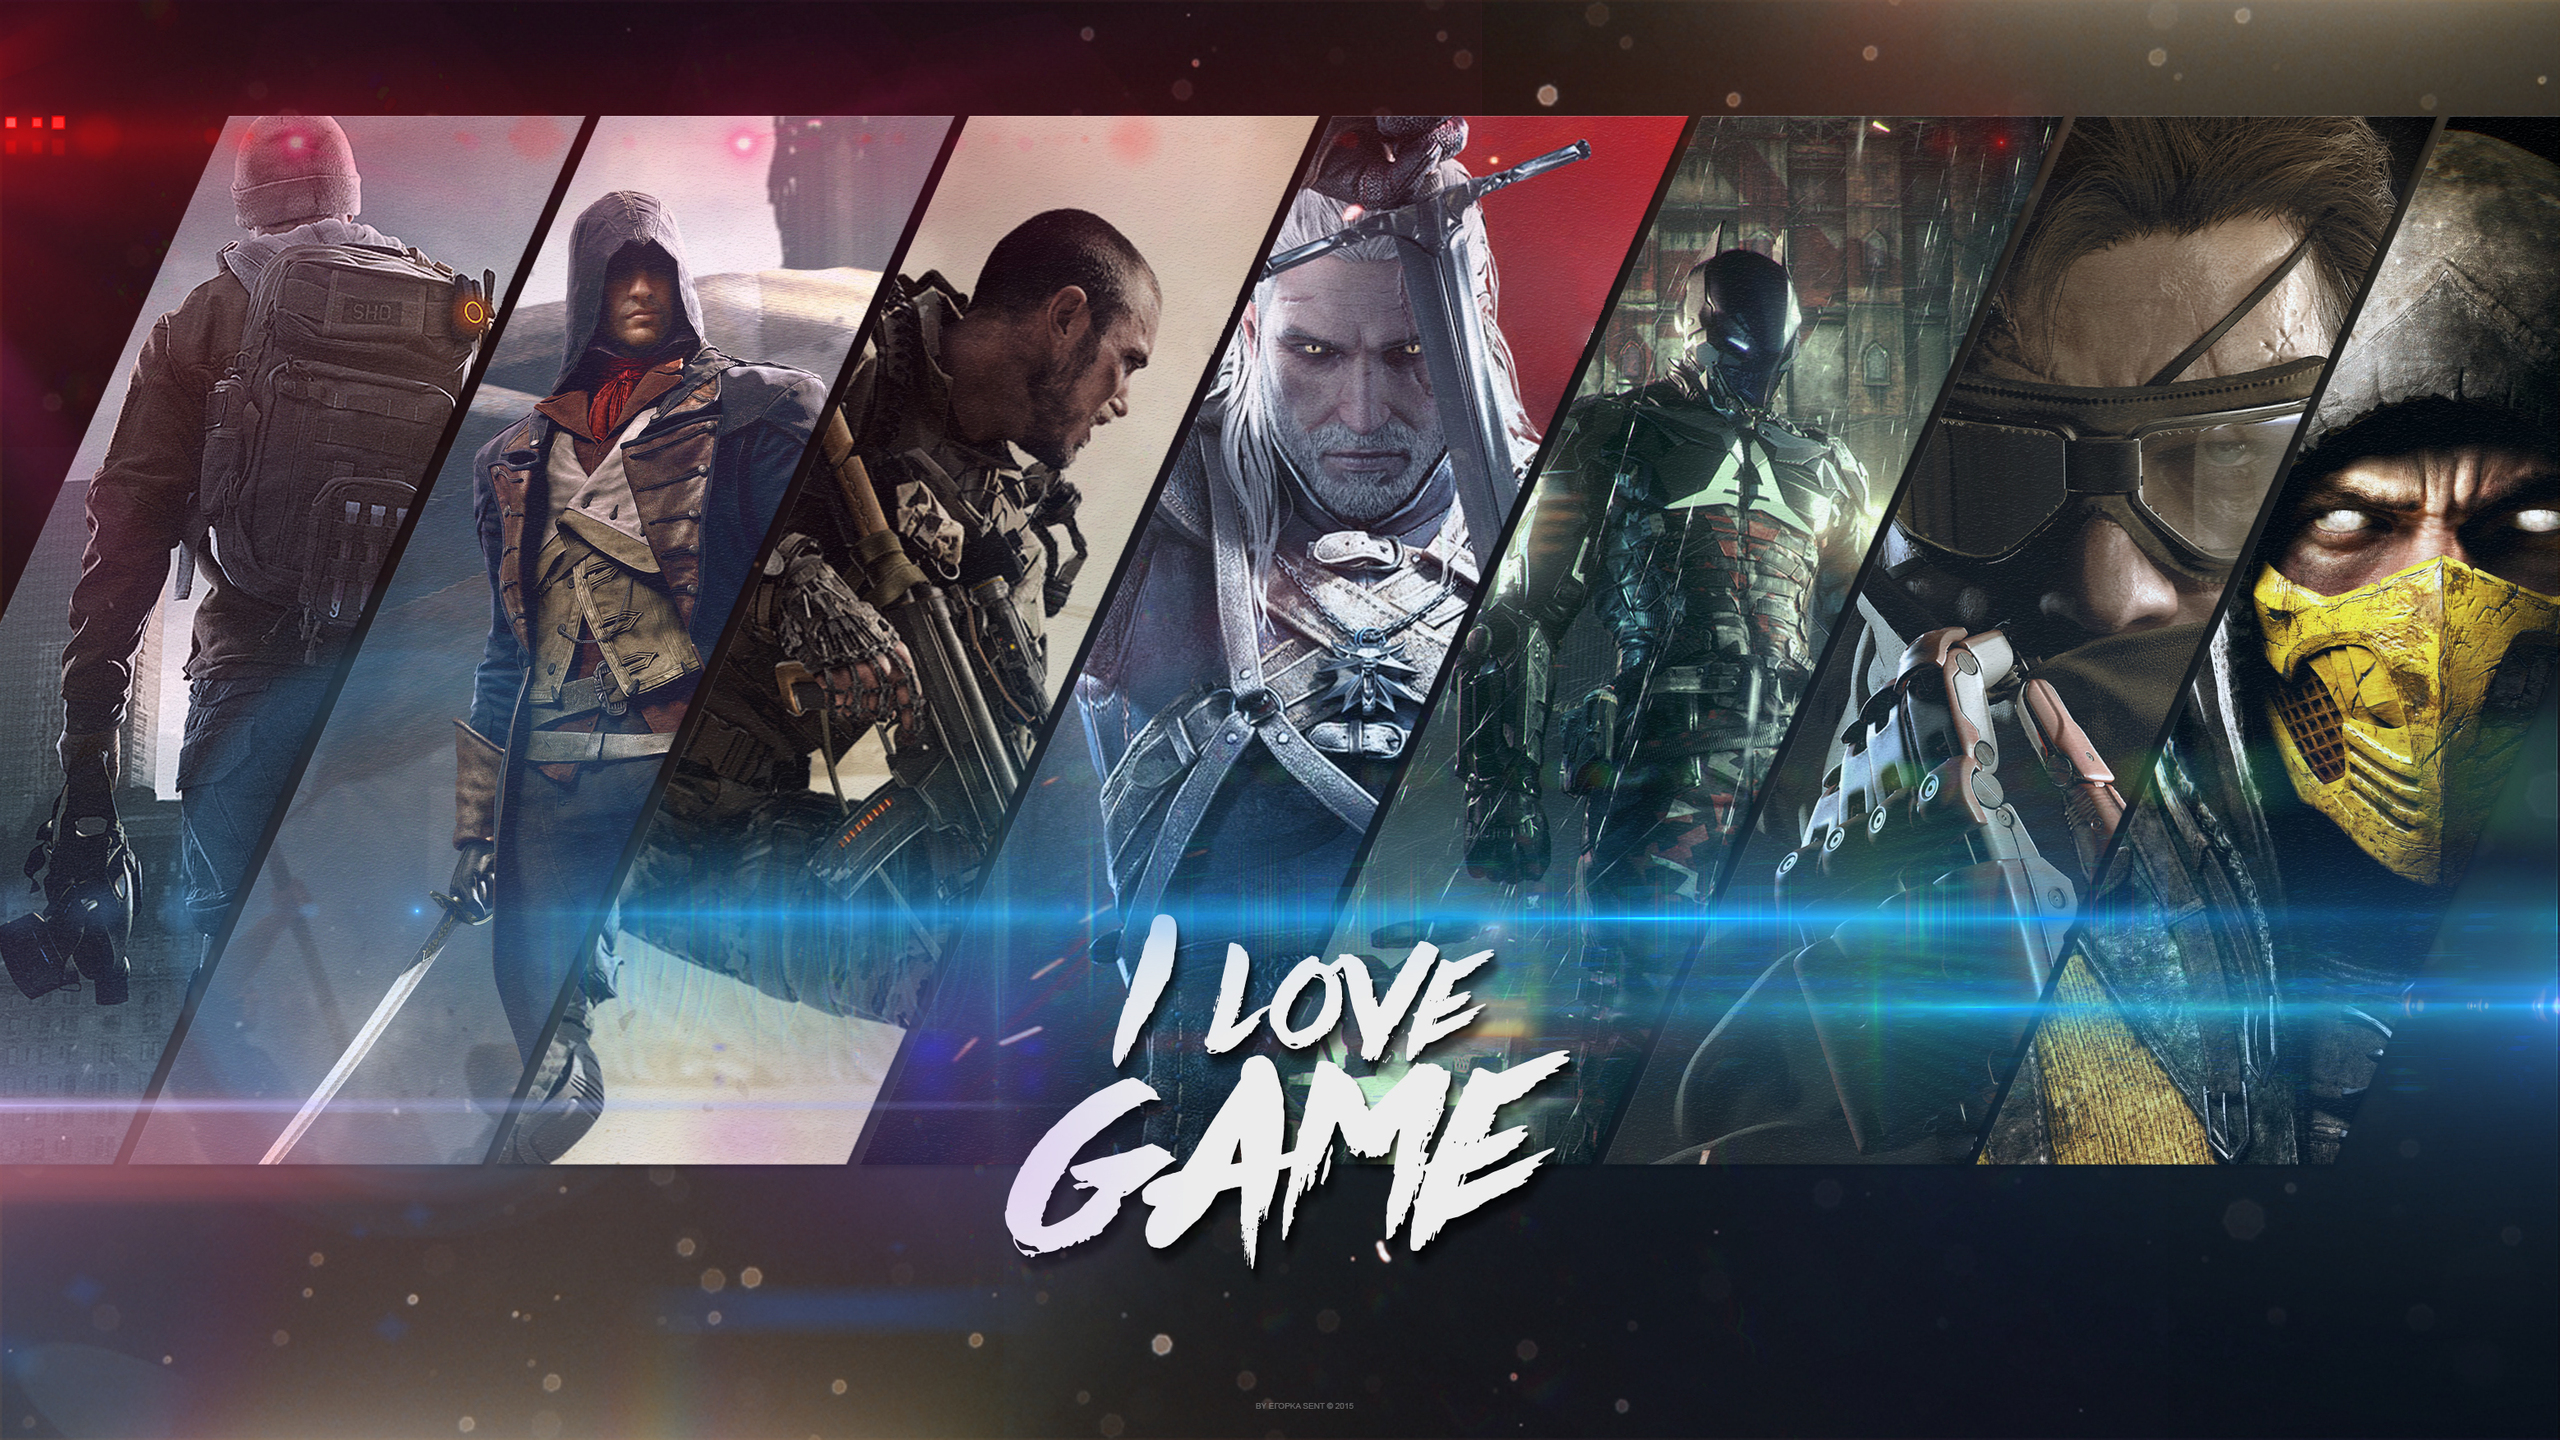 2560x1440 Video Games Collage 1440p Resolution Hd 4k